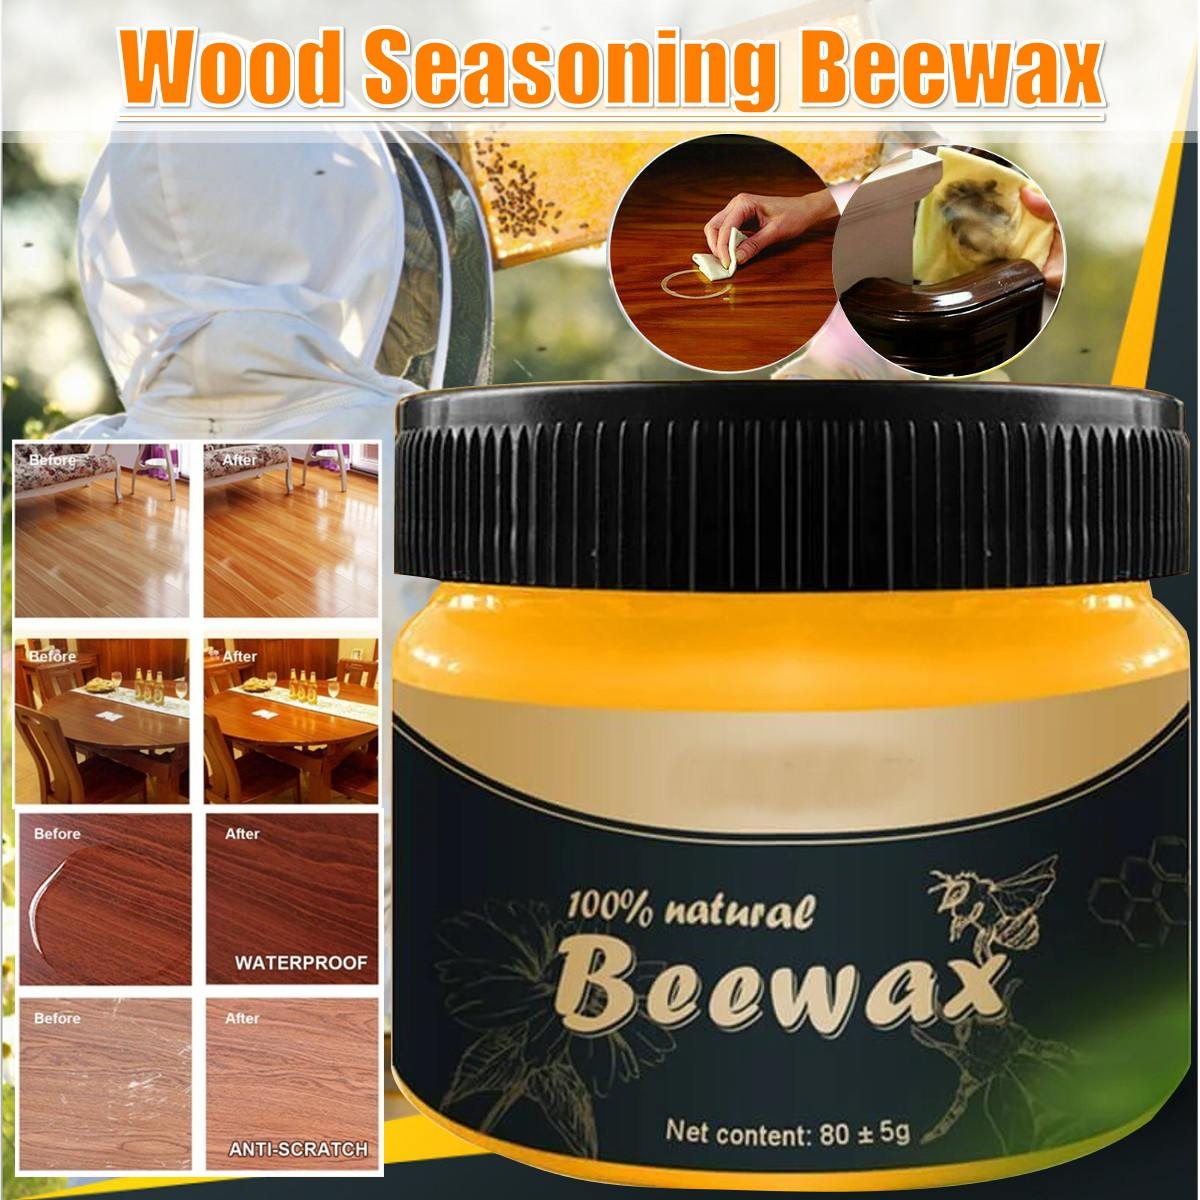 Organic Natural Pure Wax Wood Seasoning Beewax Furniture Care  Complete Solution Home Cleaning Polishing Home Supplies